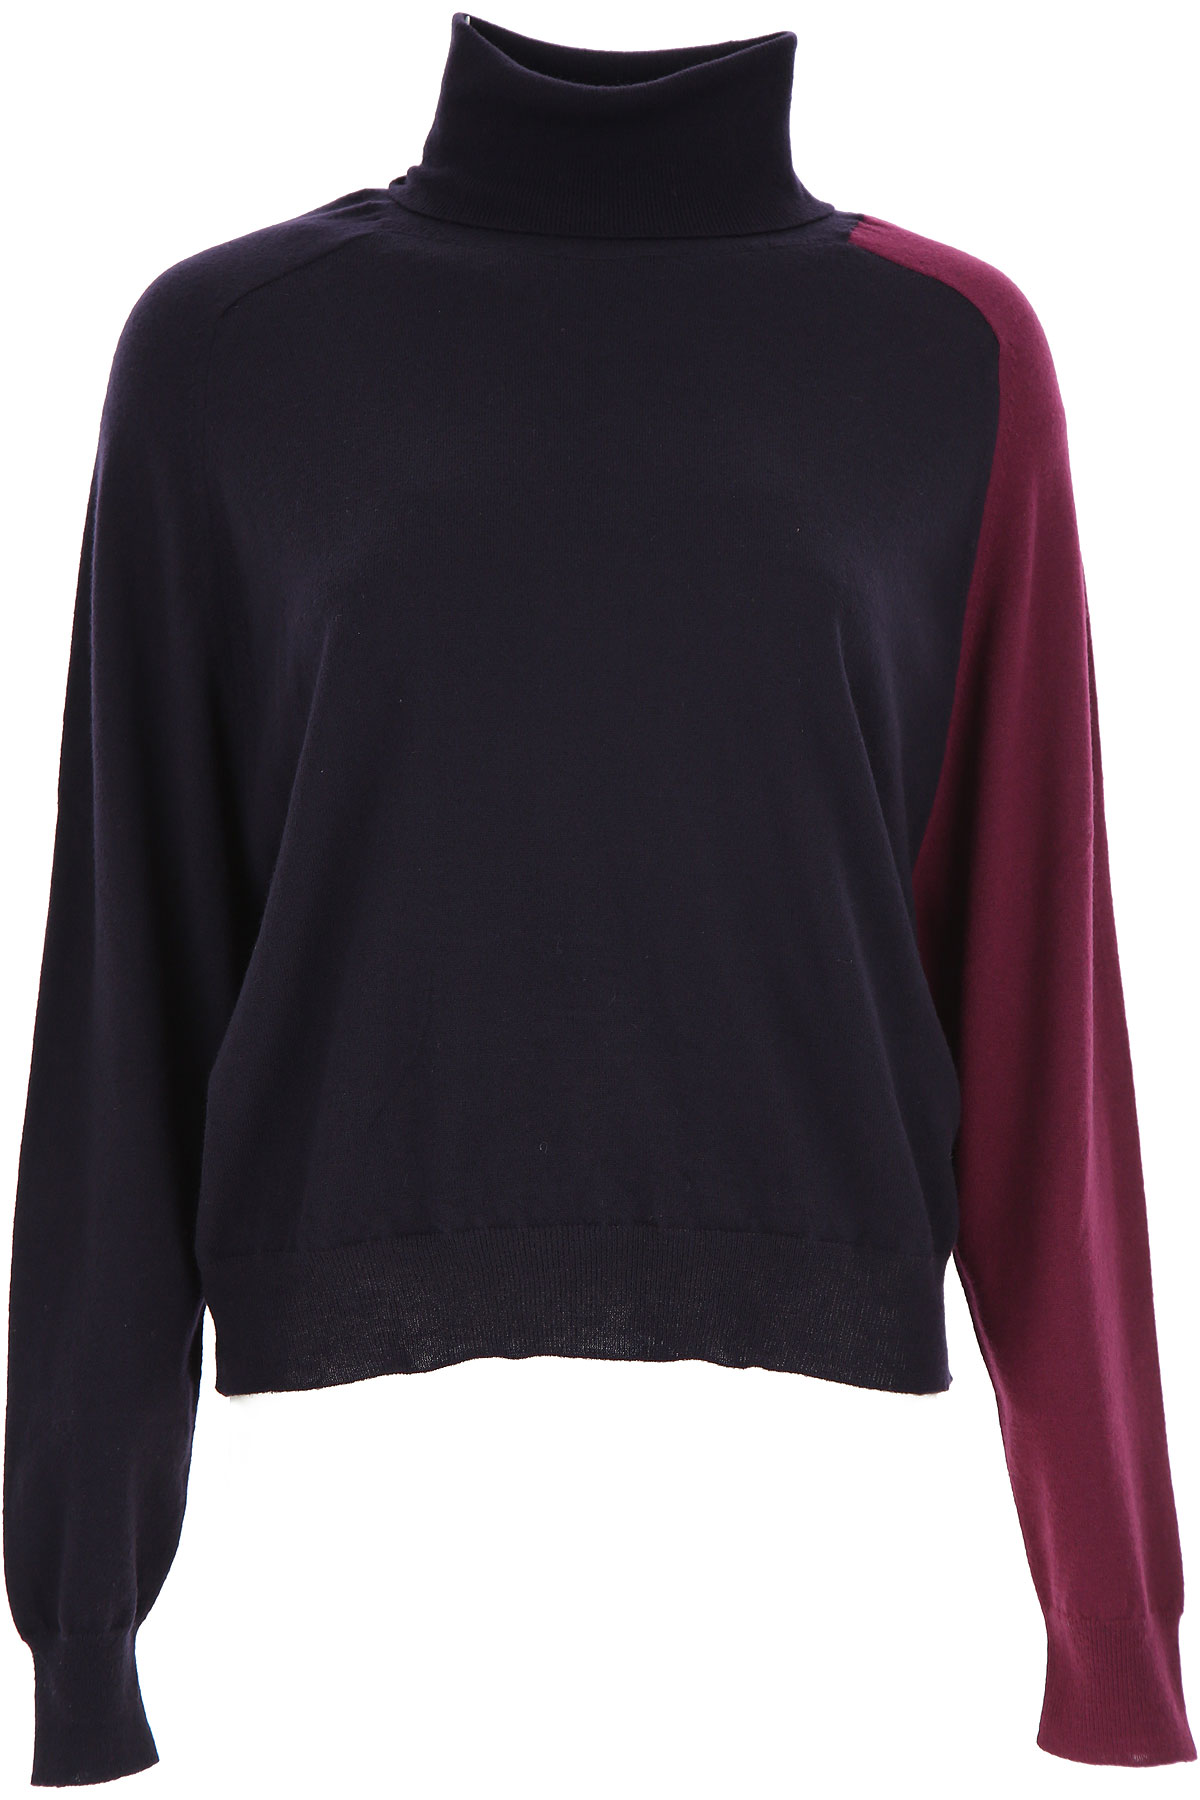 Liviana Conti Sweater for Women Jumper On Sale, Midnight Blue, Virgin wool, 2019, 4 6 8